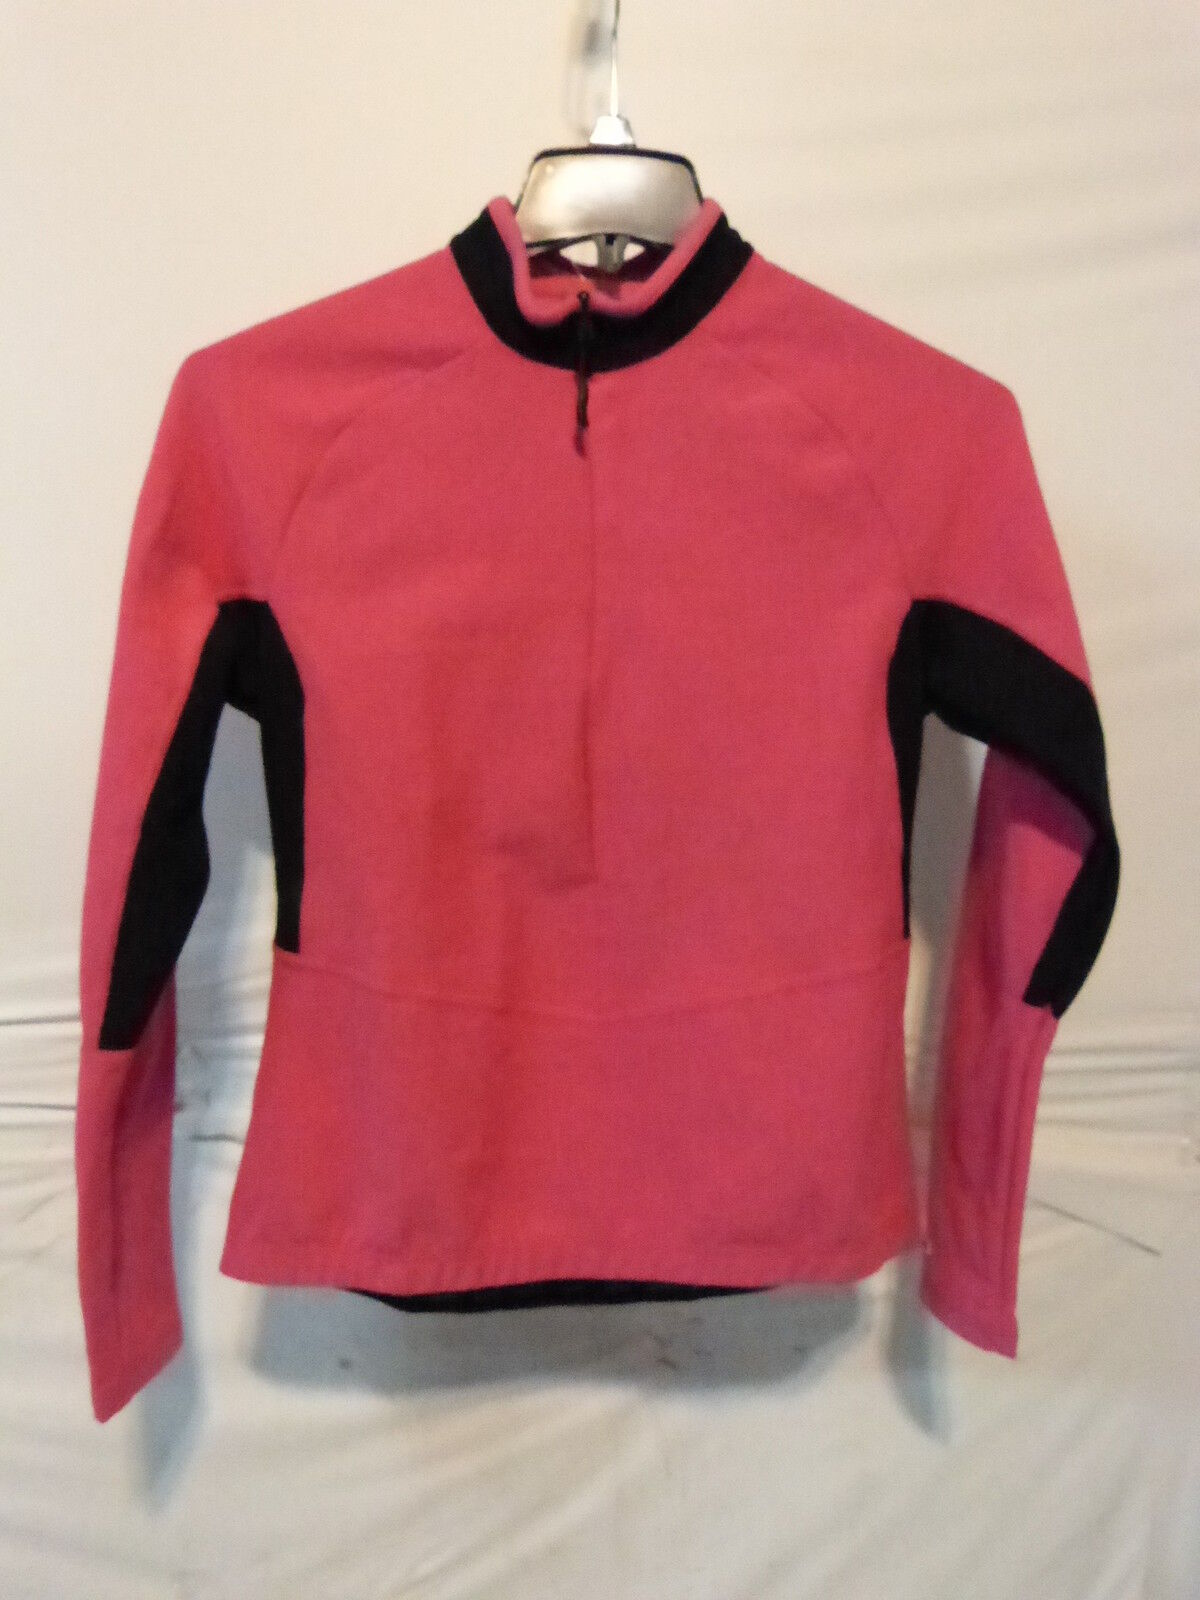 Sportful Women's Long Sleeve Midweight Cycling Jersey XXL Pink